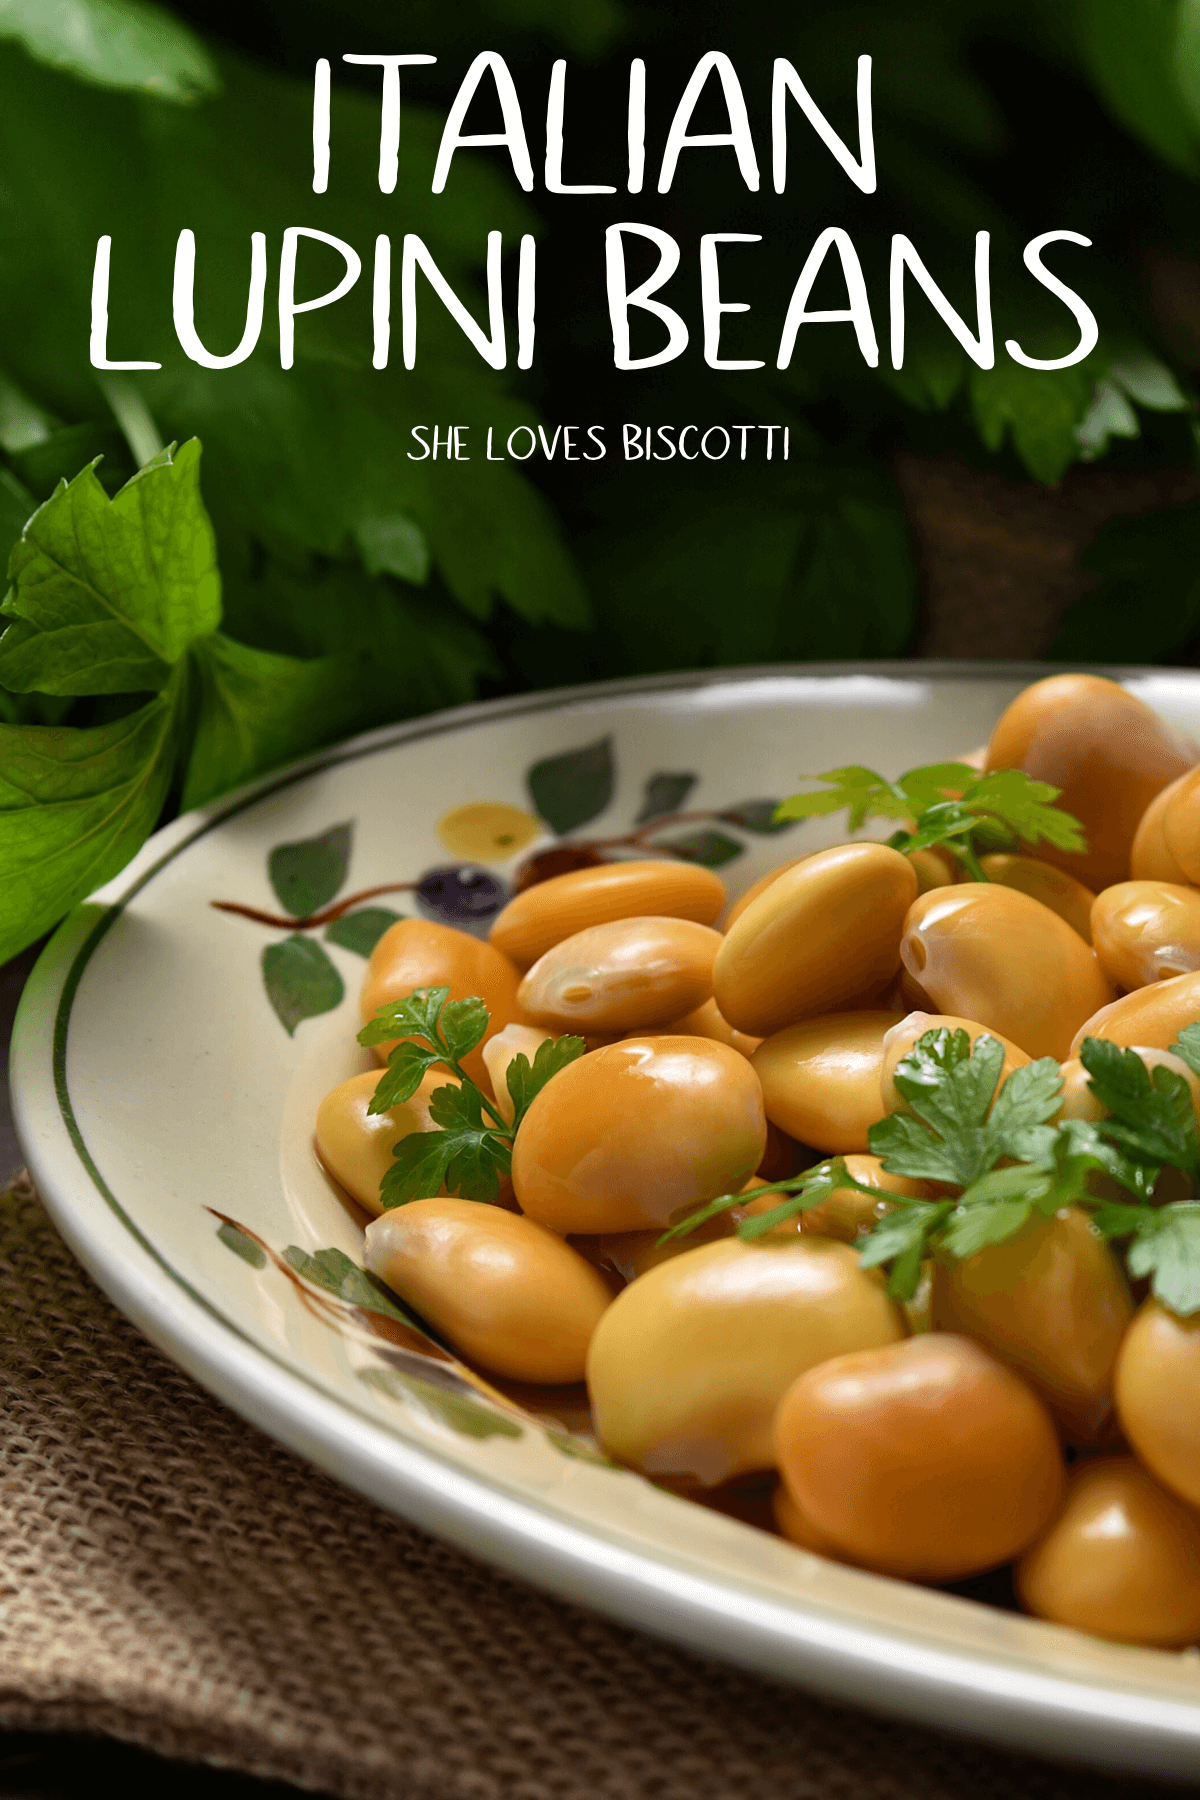 Here is a step by step tutorial just for you so that you can prepare your own lupini beans.  #lupini #lupinibeans #appetizers #Italianappetizers #snacks #tremocos #diy #Italian